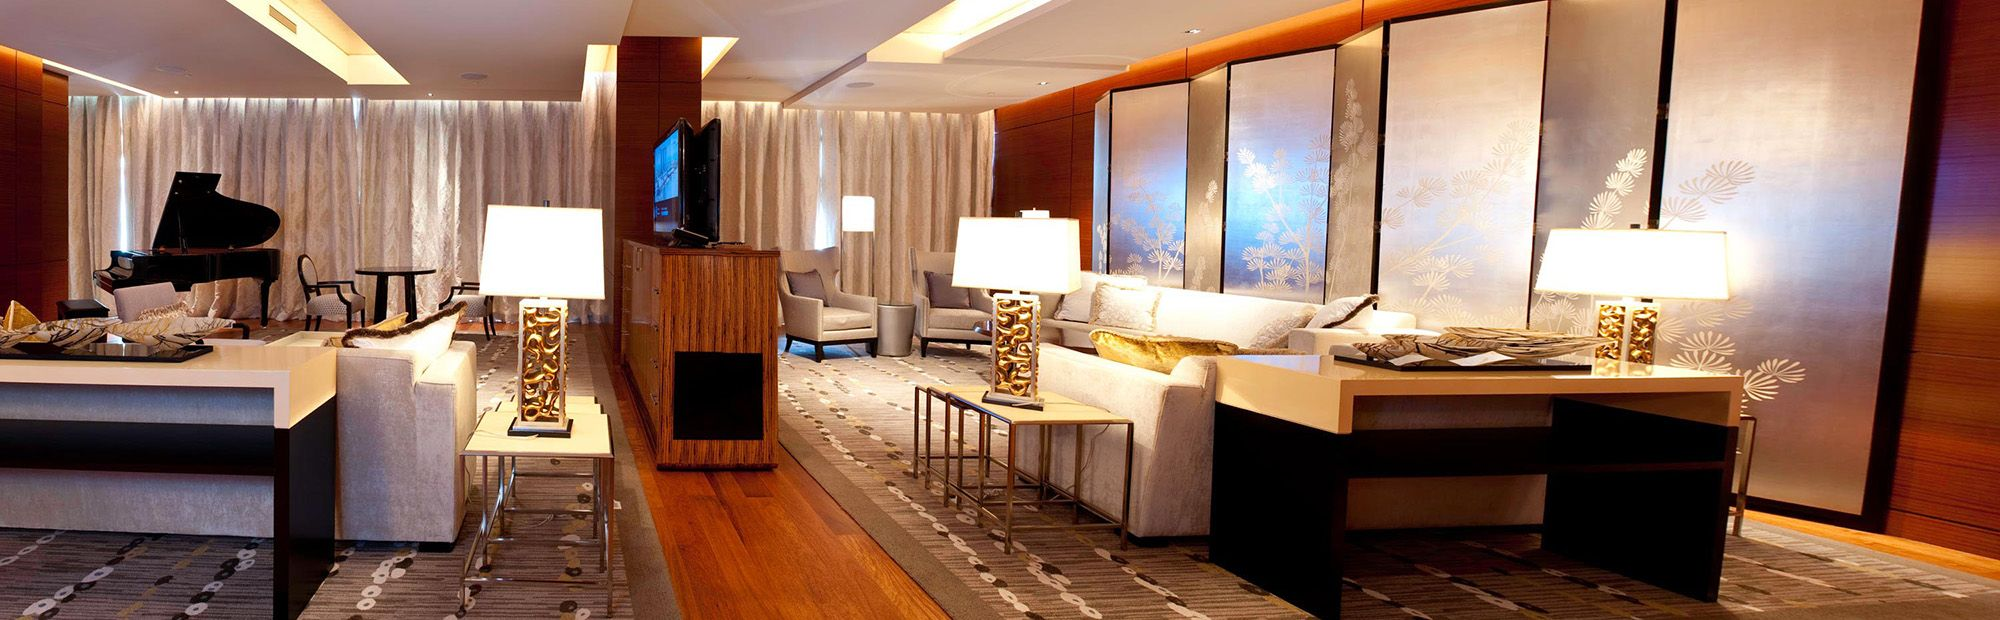 Chairman Suite At Marina Bay Sands Hotel 629 Square Metres Four